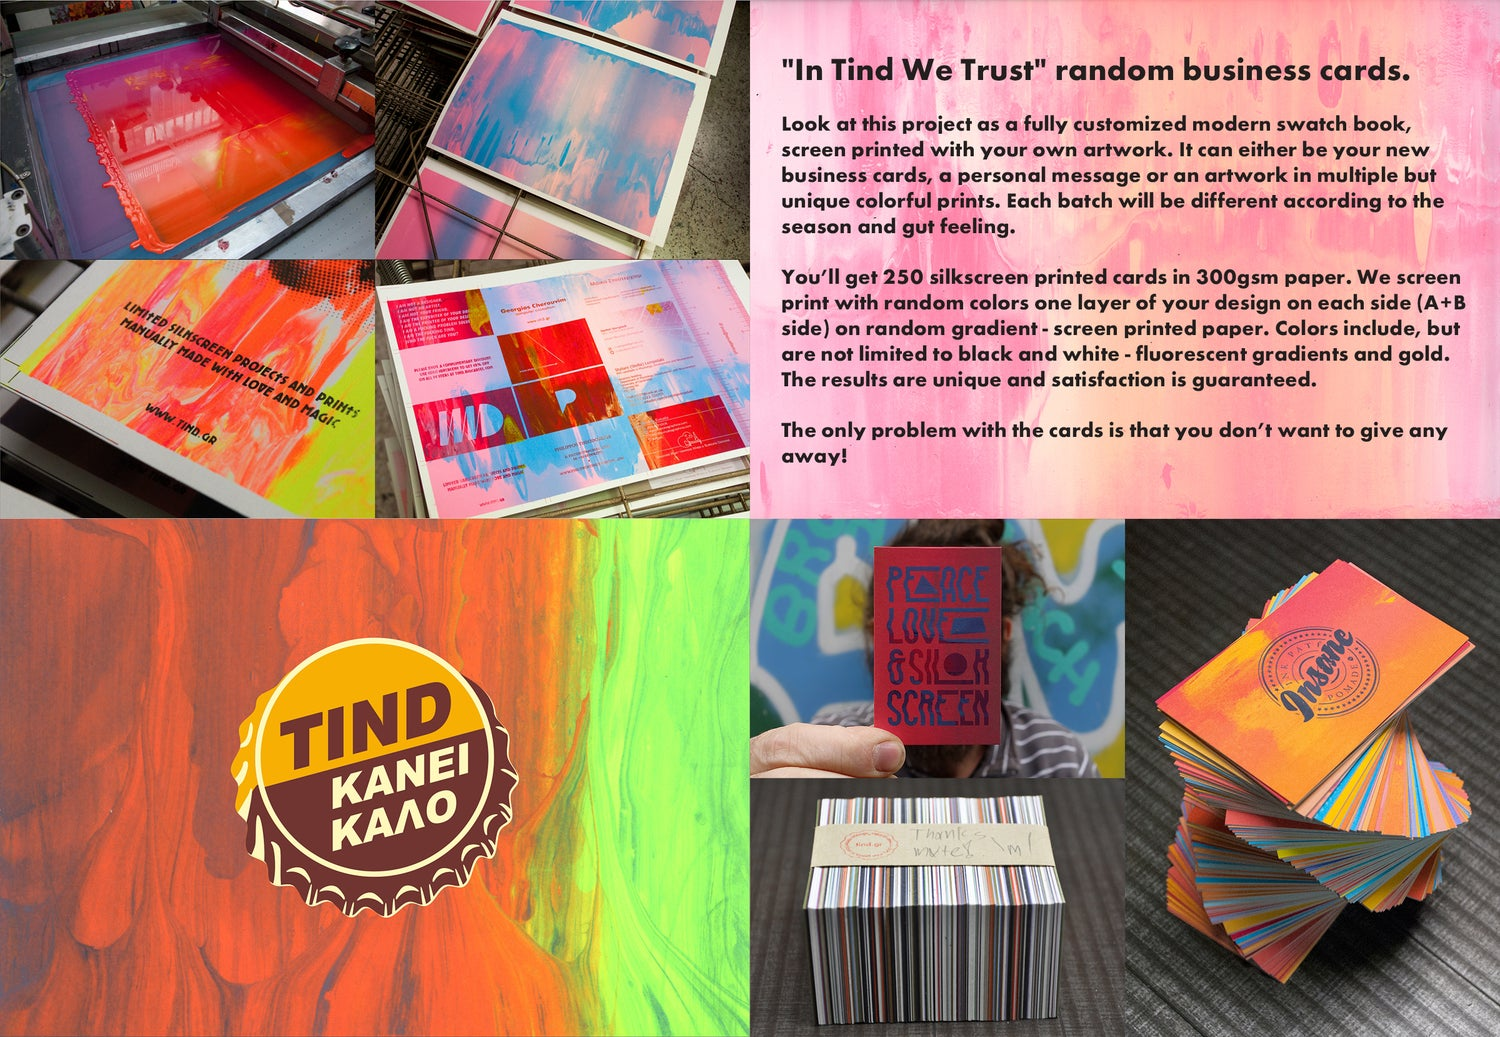 Tind in tind we trust random business card prints in tind we trust random business card prints colourmoves Images